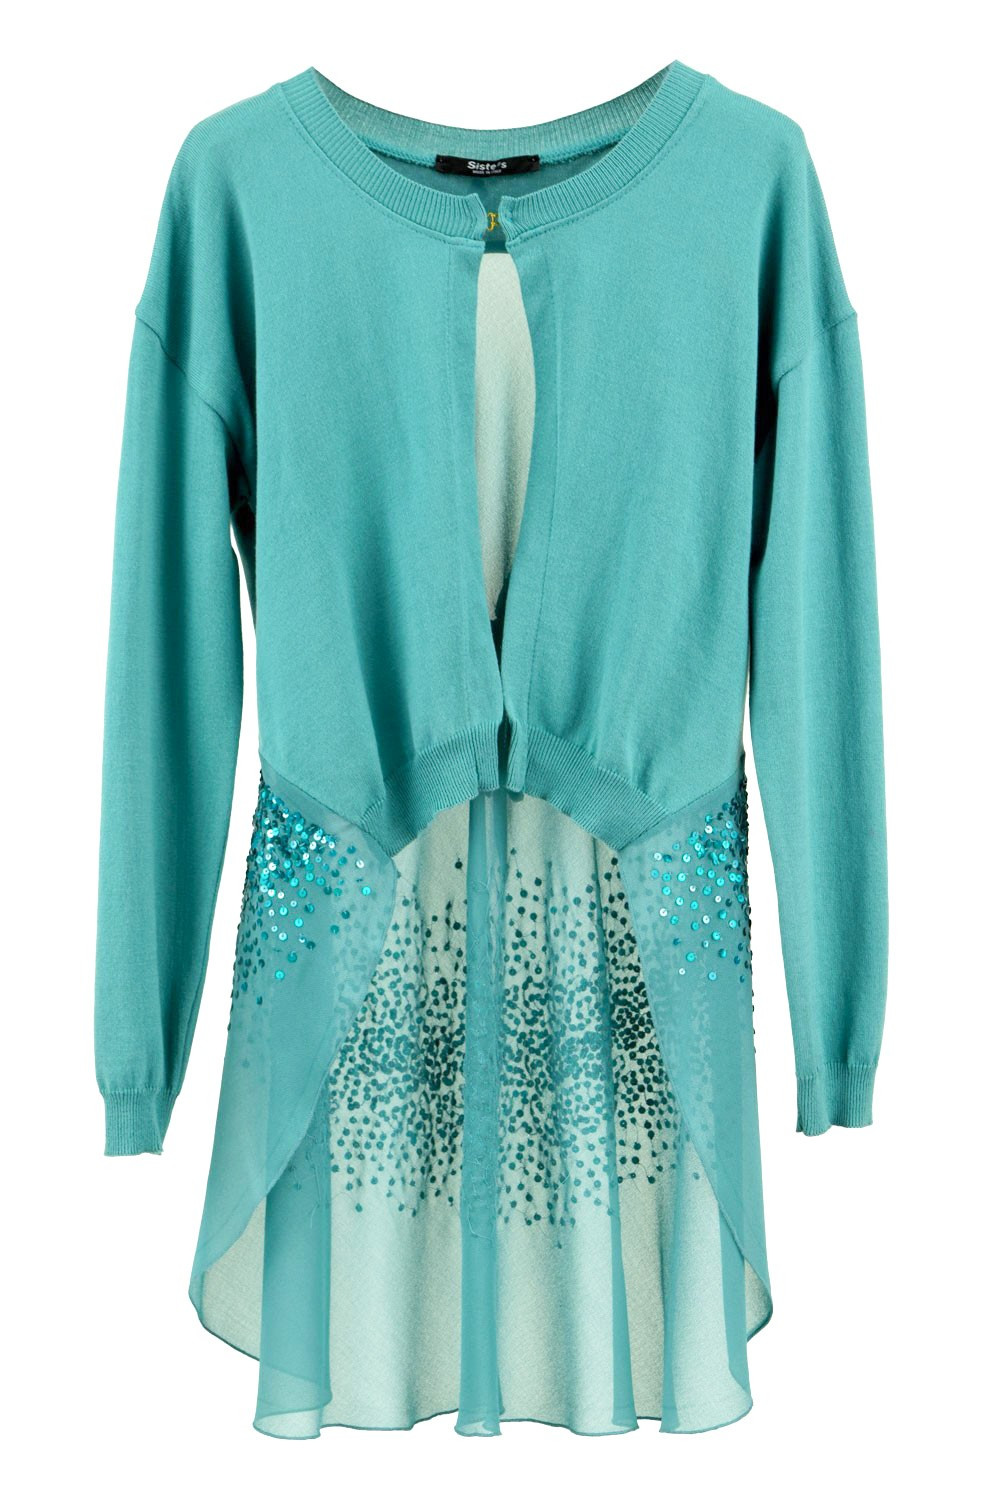 A Bit of Charming Glitter Sequin Cardigan in Green - CLADDIO